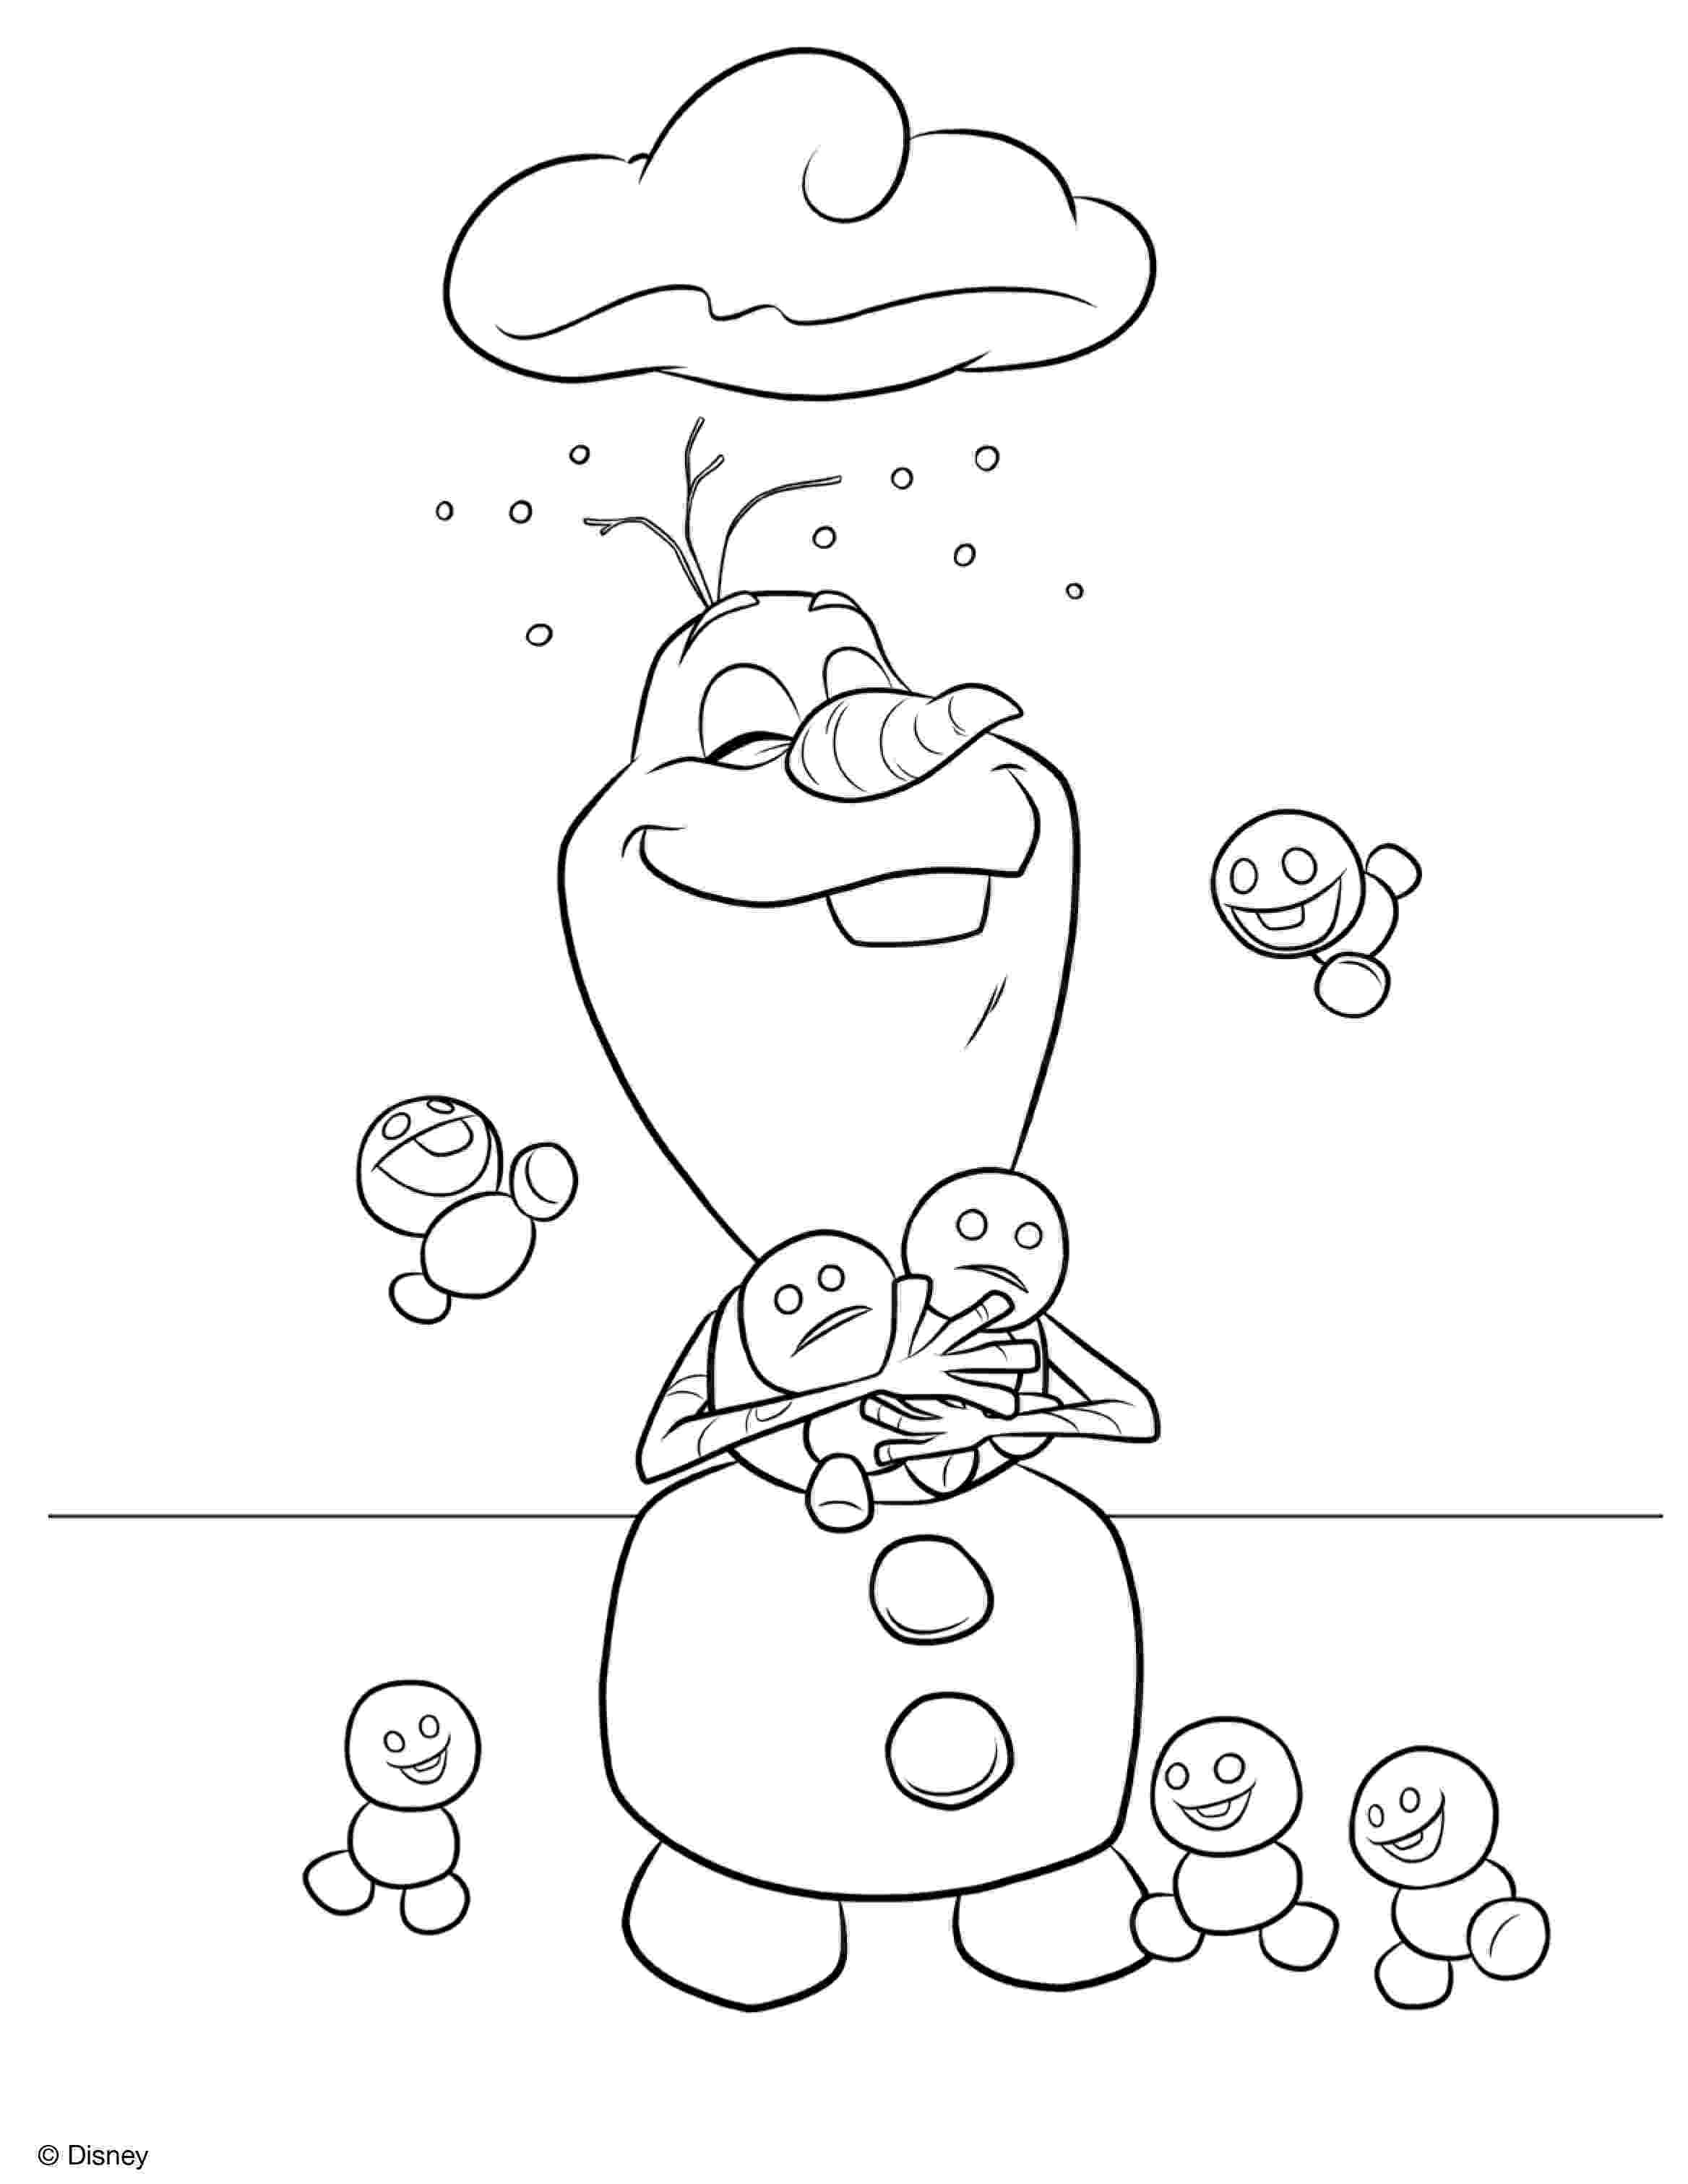 olaf coloring frozens olaf coloring pages best coloring pages for kids olaf coloring 1 1